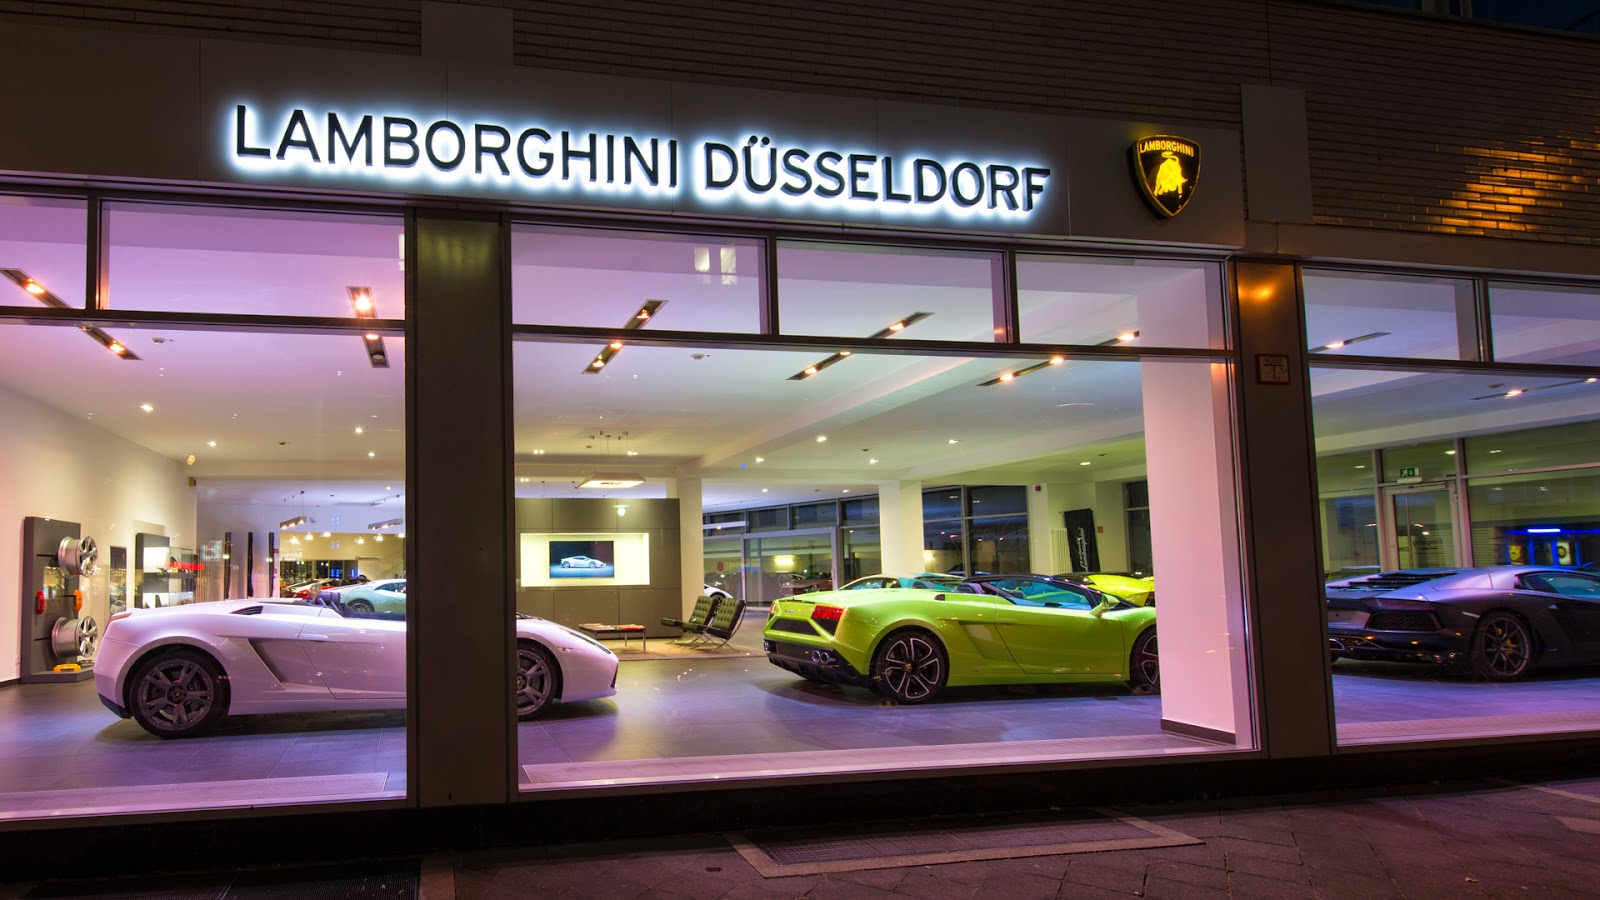 laurus fashionnews d sseldorf lamborghini in d sseldorf moll sportwagen er ffnet in der rather. Black Bedroom Furniture Sets. Home Design Ideas